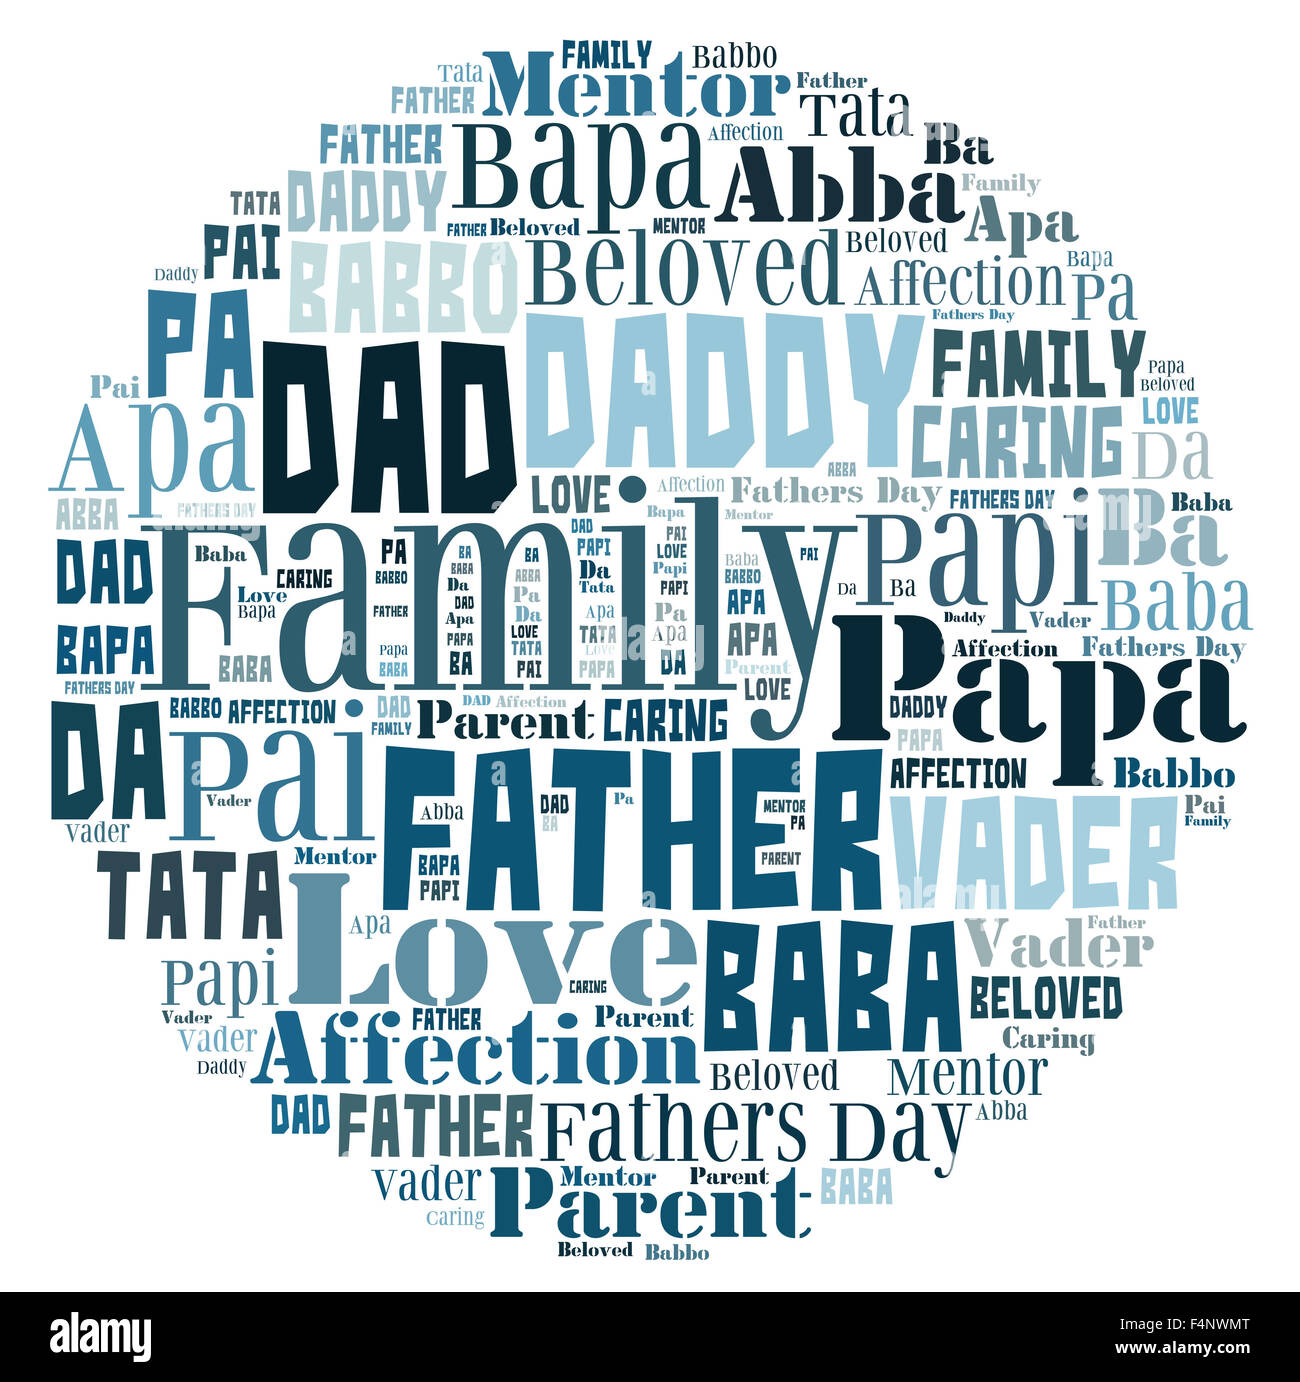 Word Cloud For Fathers Day That Includes The Word Father In Different Languages In Letters In A Shape That Represents The World